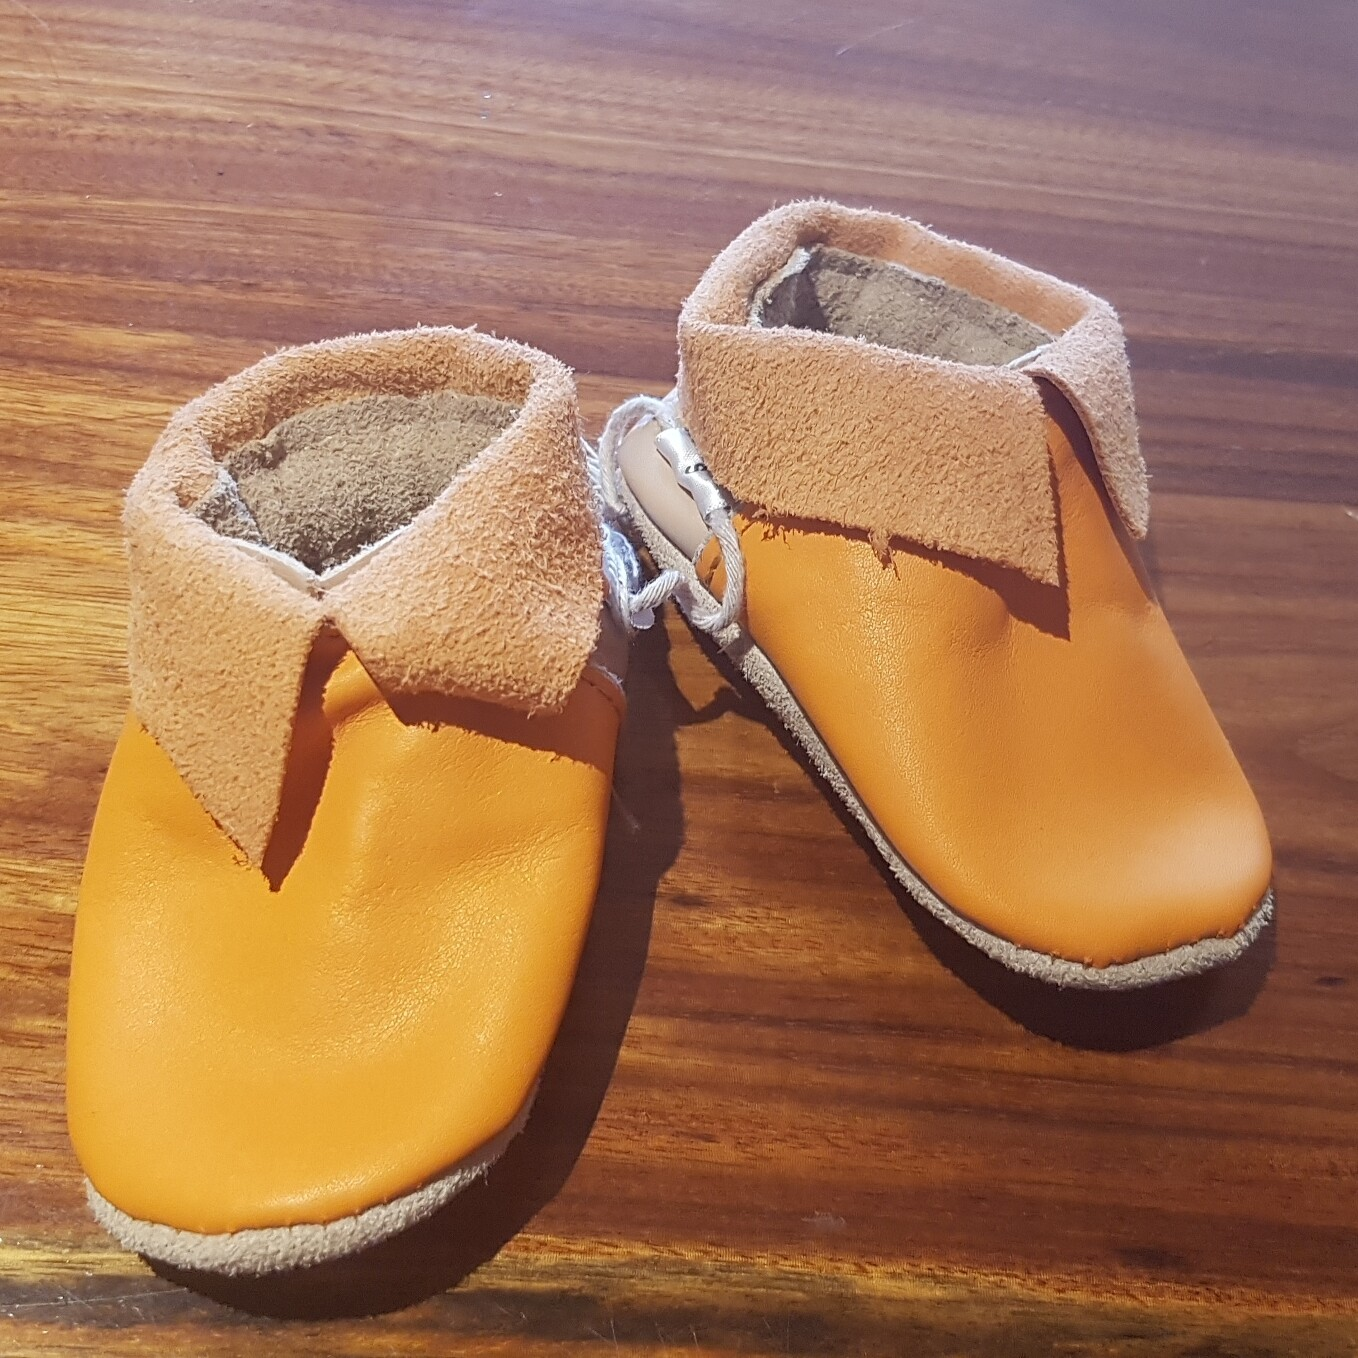 Orange Leather Shoes with cuff